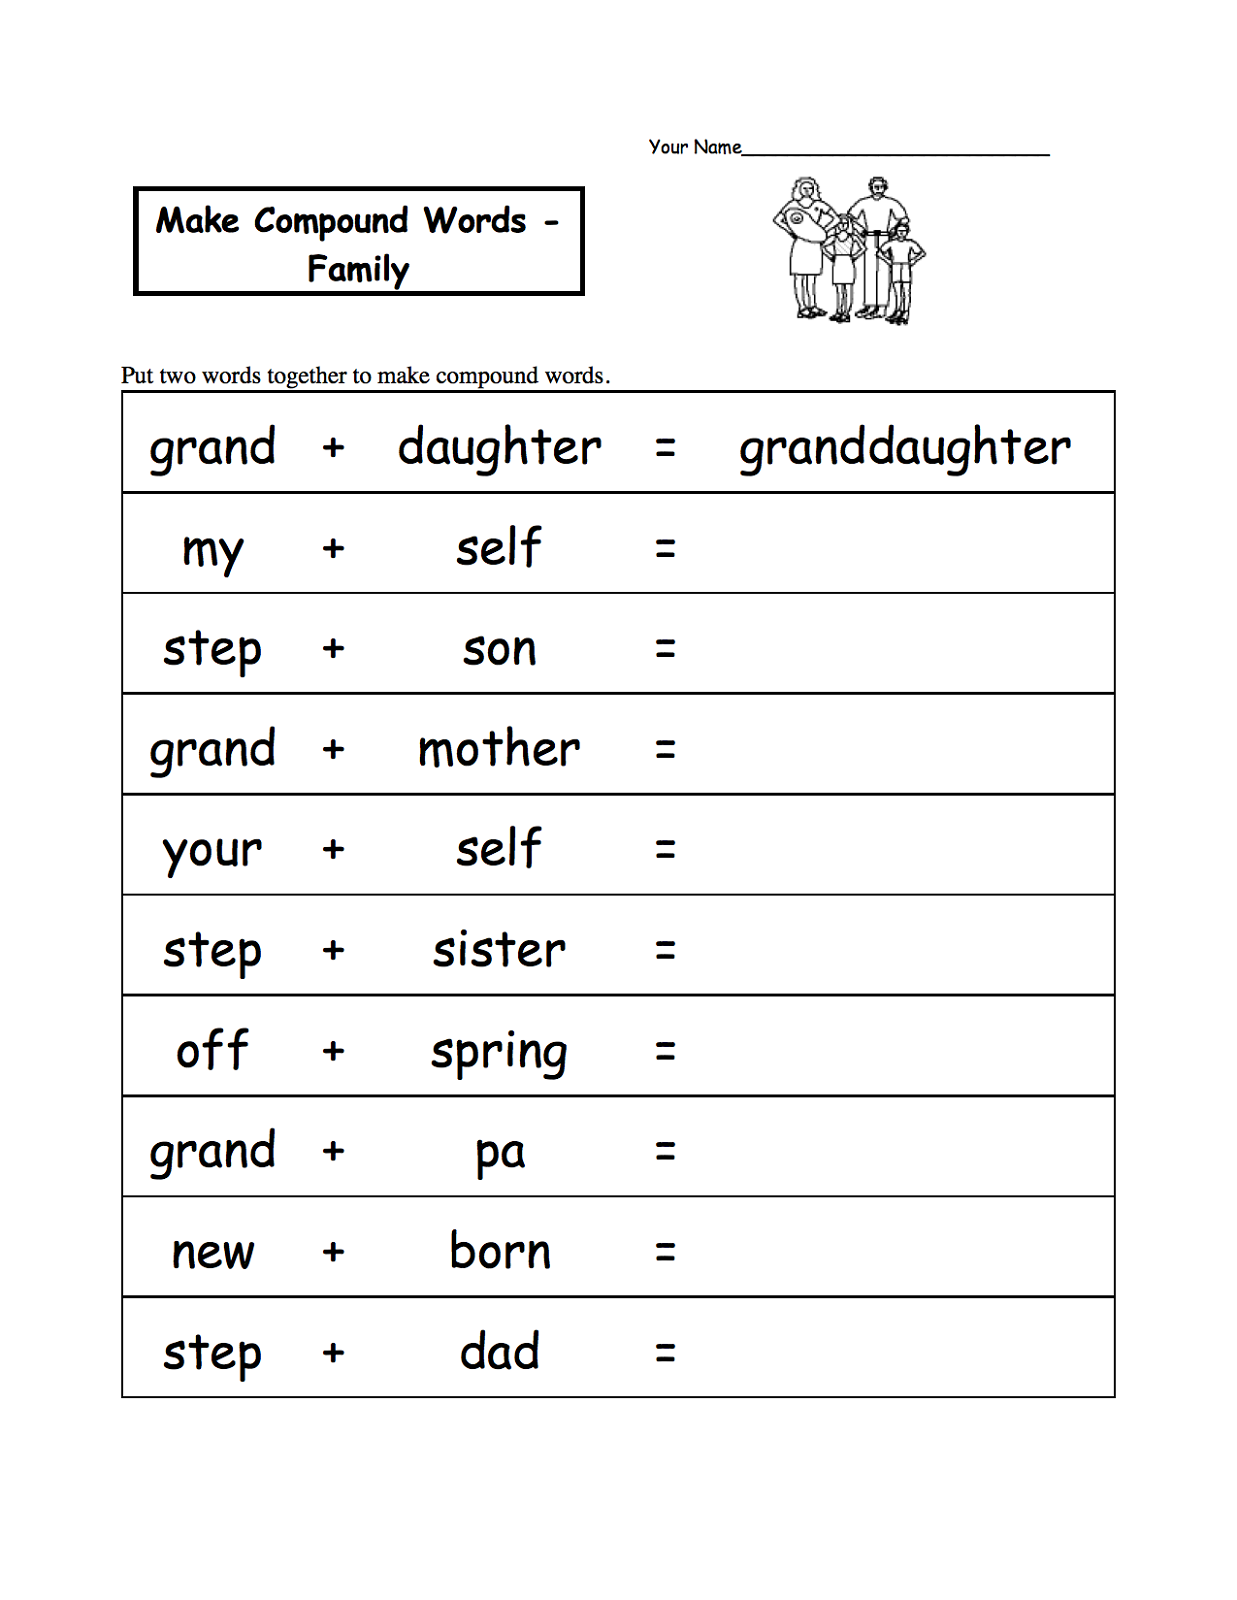 75 Printable Worksheets Ks1 Printable Download Docx